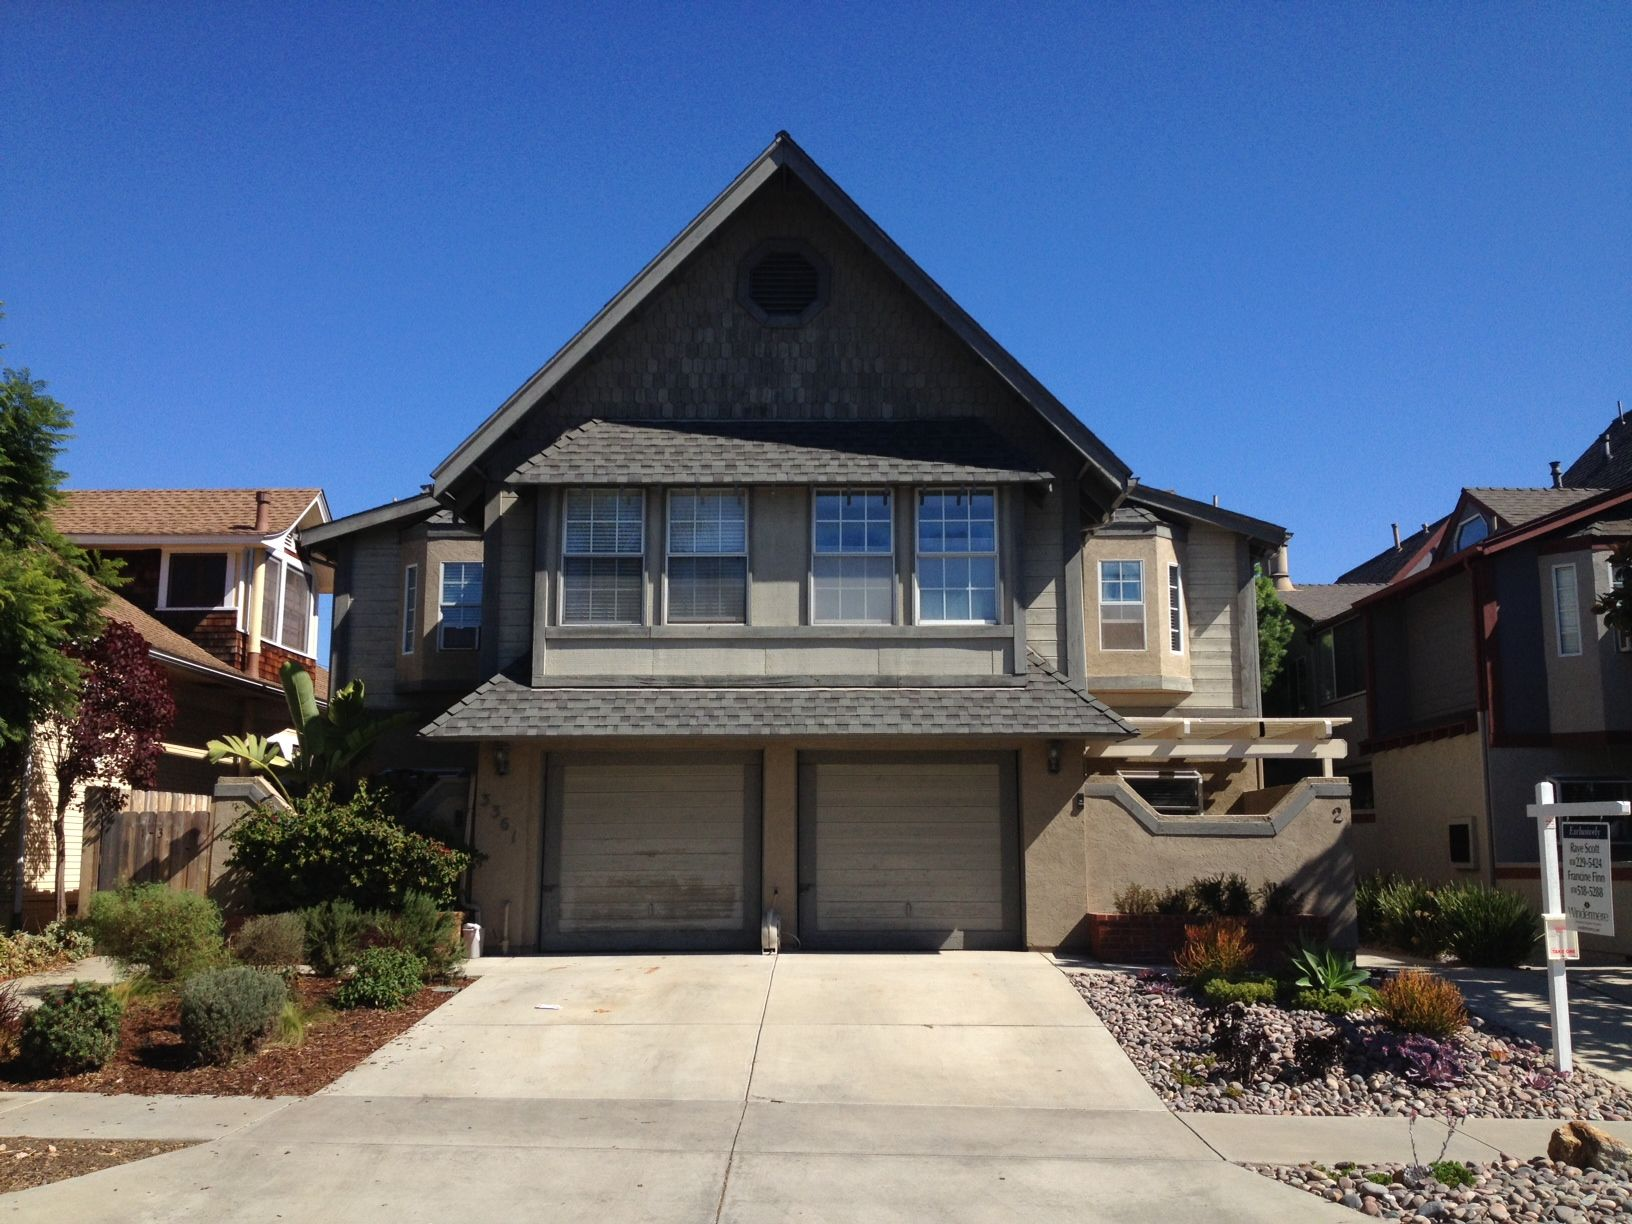 North Park Townhome For Sale Quick Walk To North Park Home Design ...